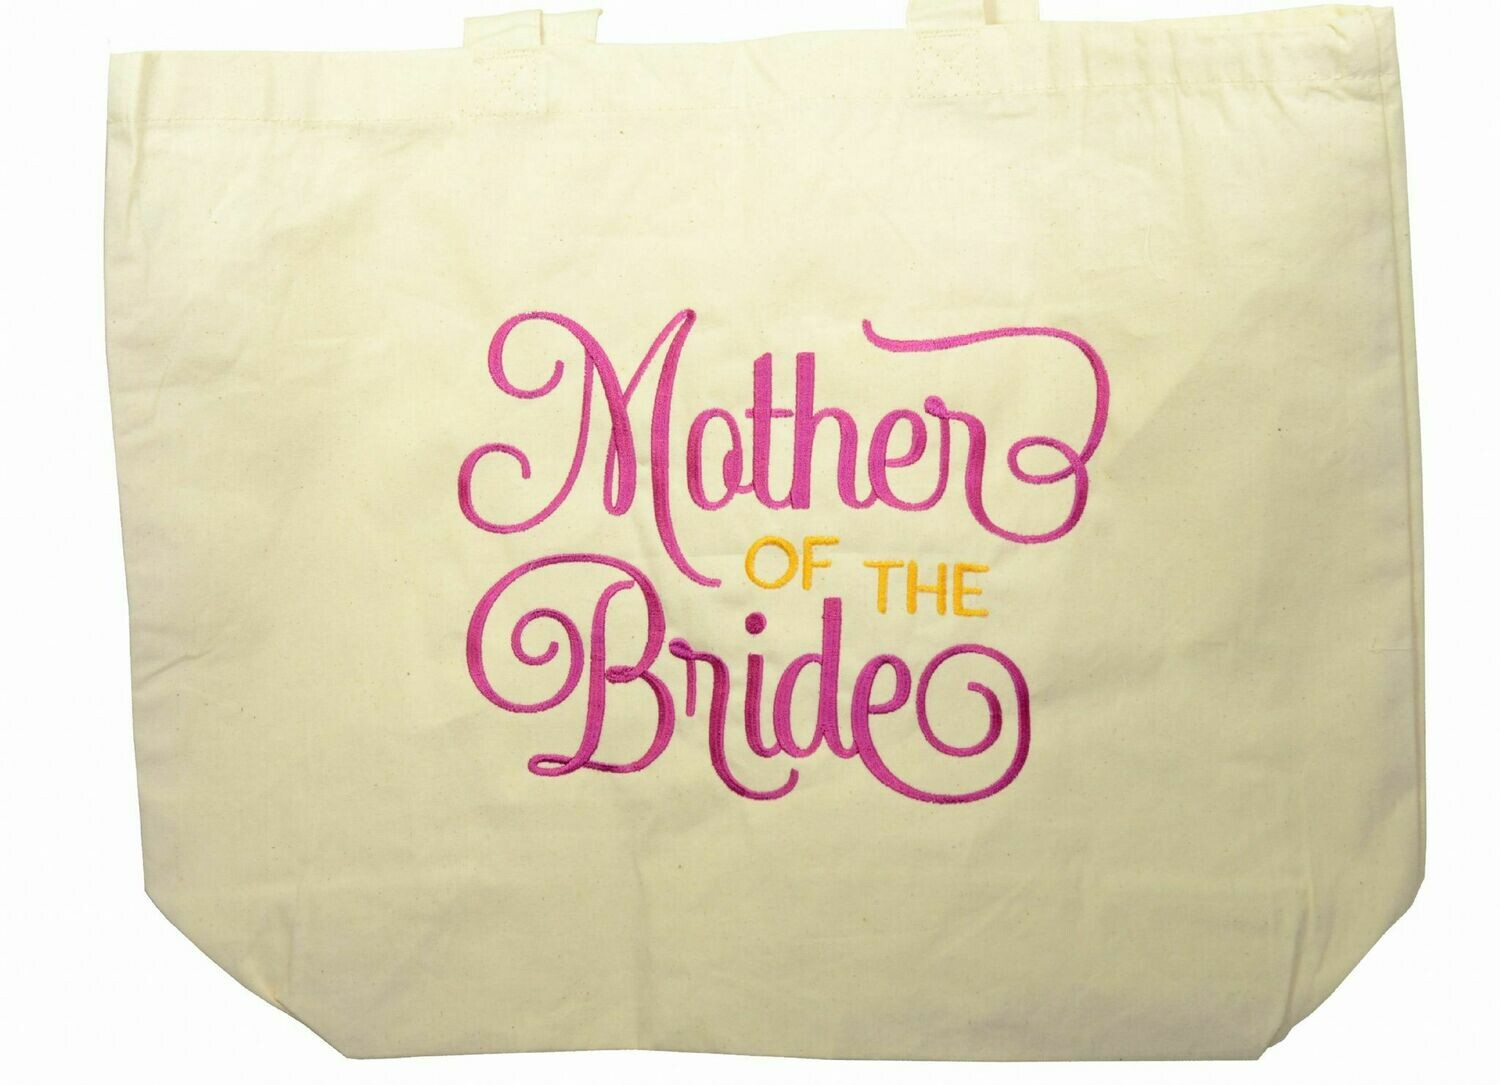 BA1 Organic Tote Bag - Mother of the Bride personalised wedding gift carrier bag